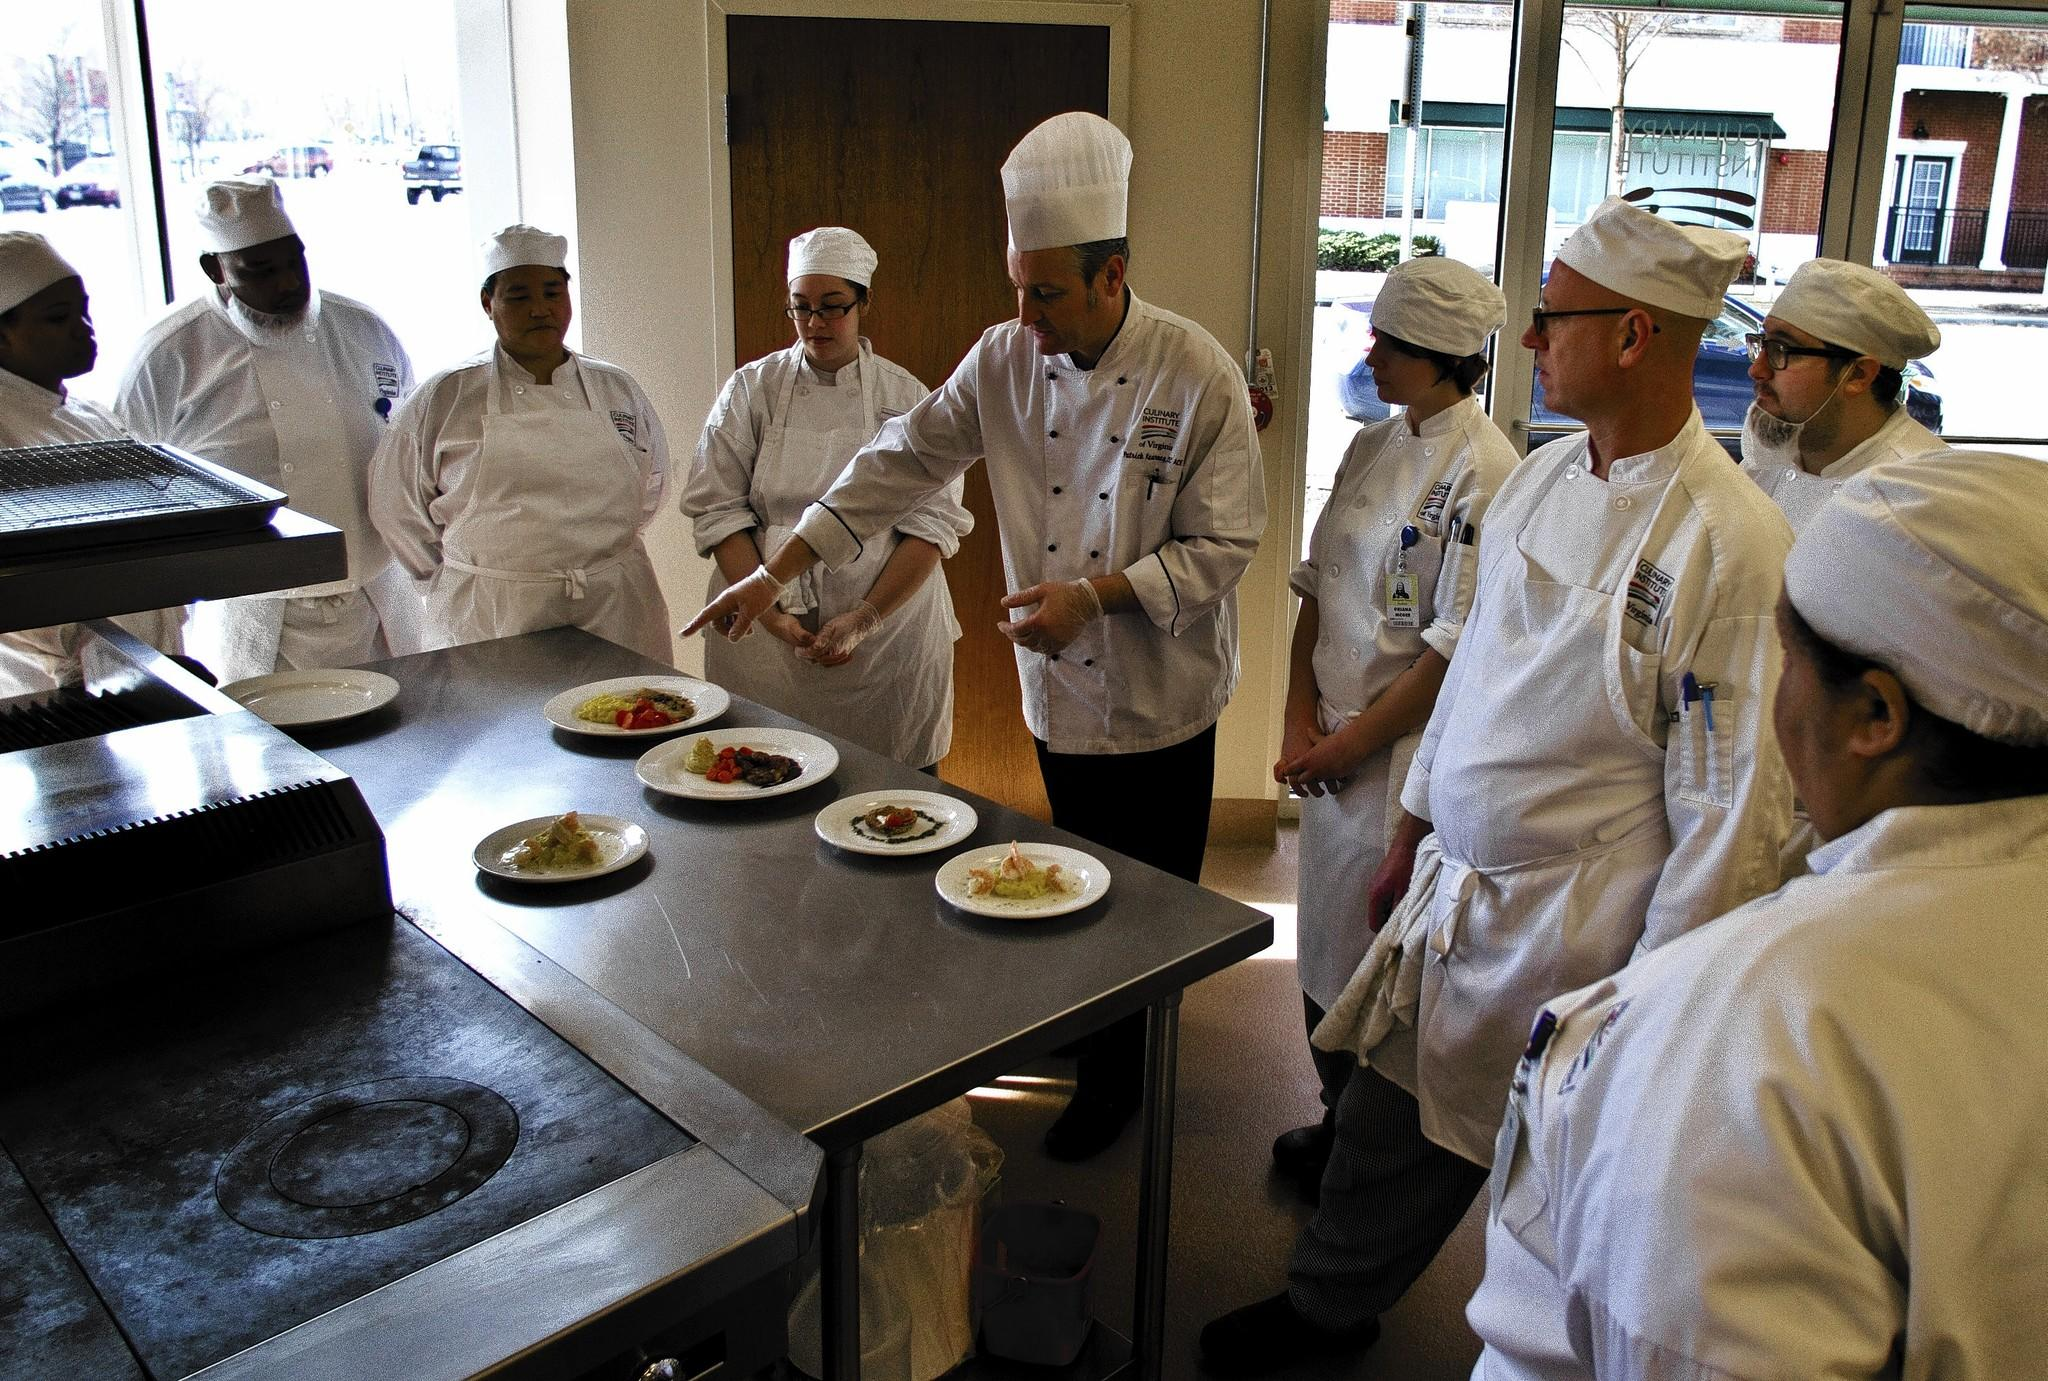 (Center) Chef Patrick Kearney goes over the dishes the students have completed today in class. Culinary Institute of Virginia's opened its Newport News campus earlier this year on the ground floor of City Center in Newport News.